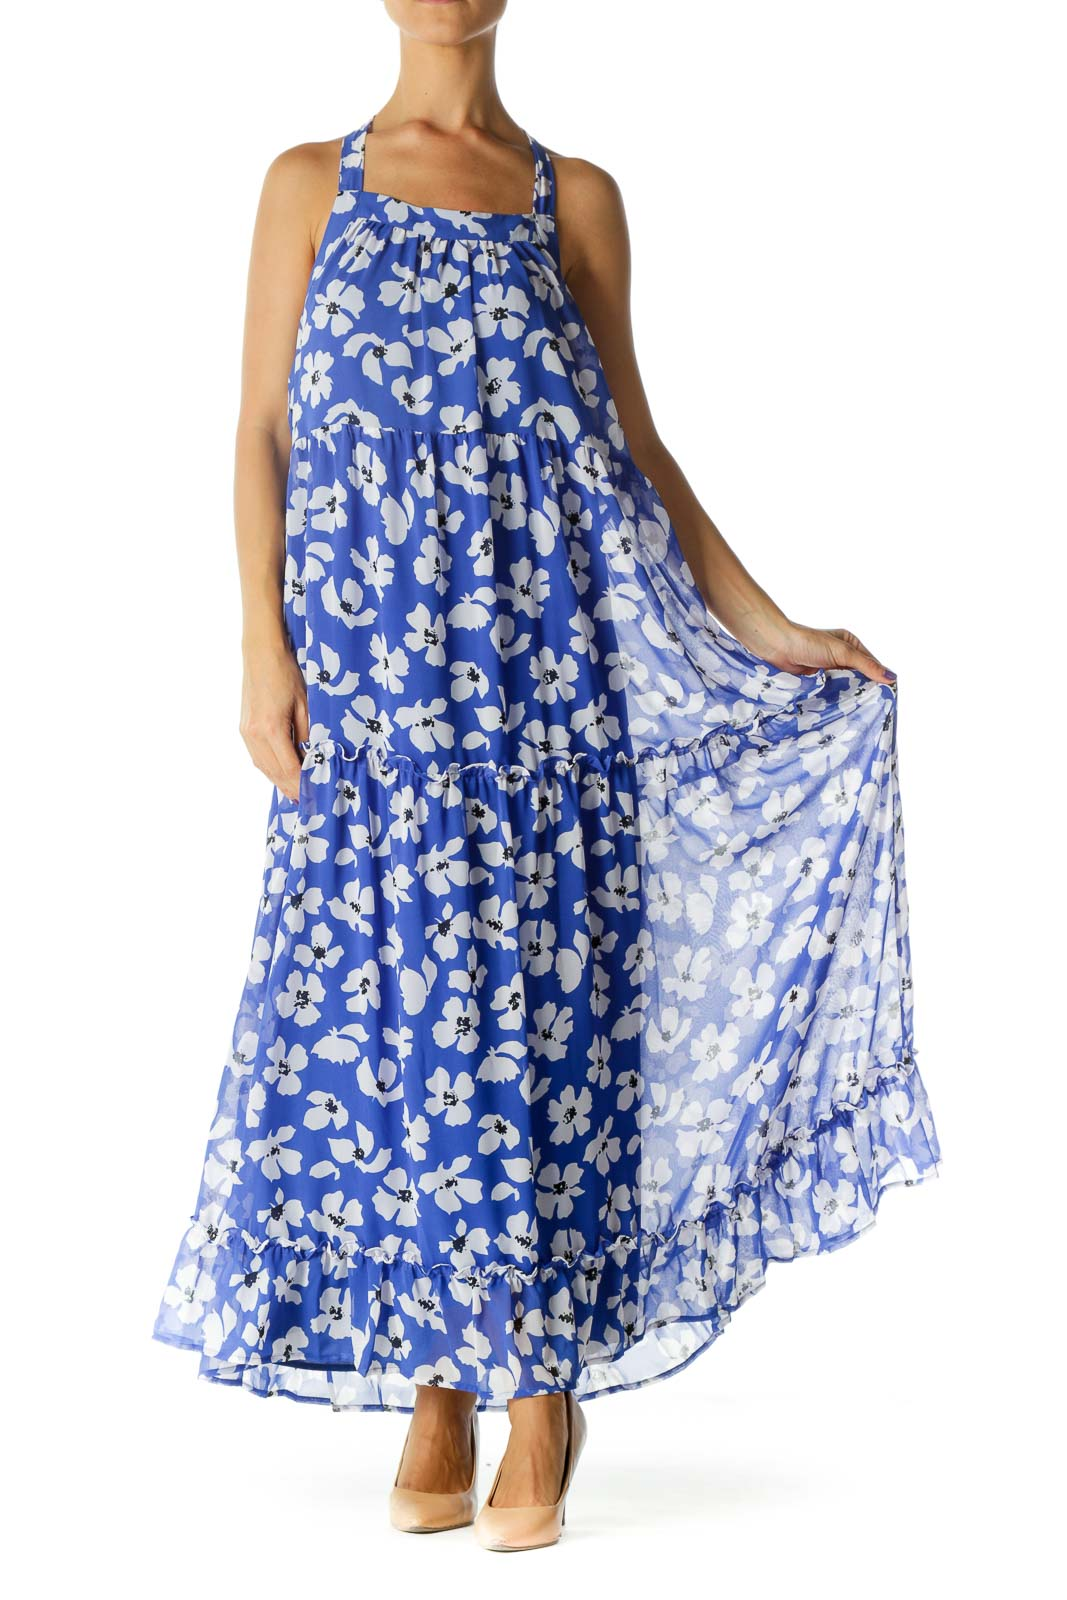 Blue White Black Floral Print Halter Neck Day Dress